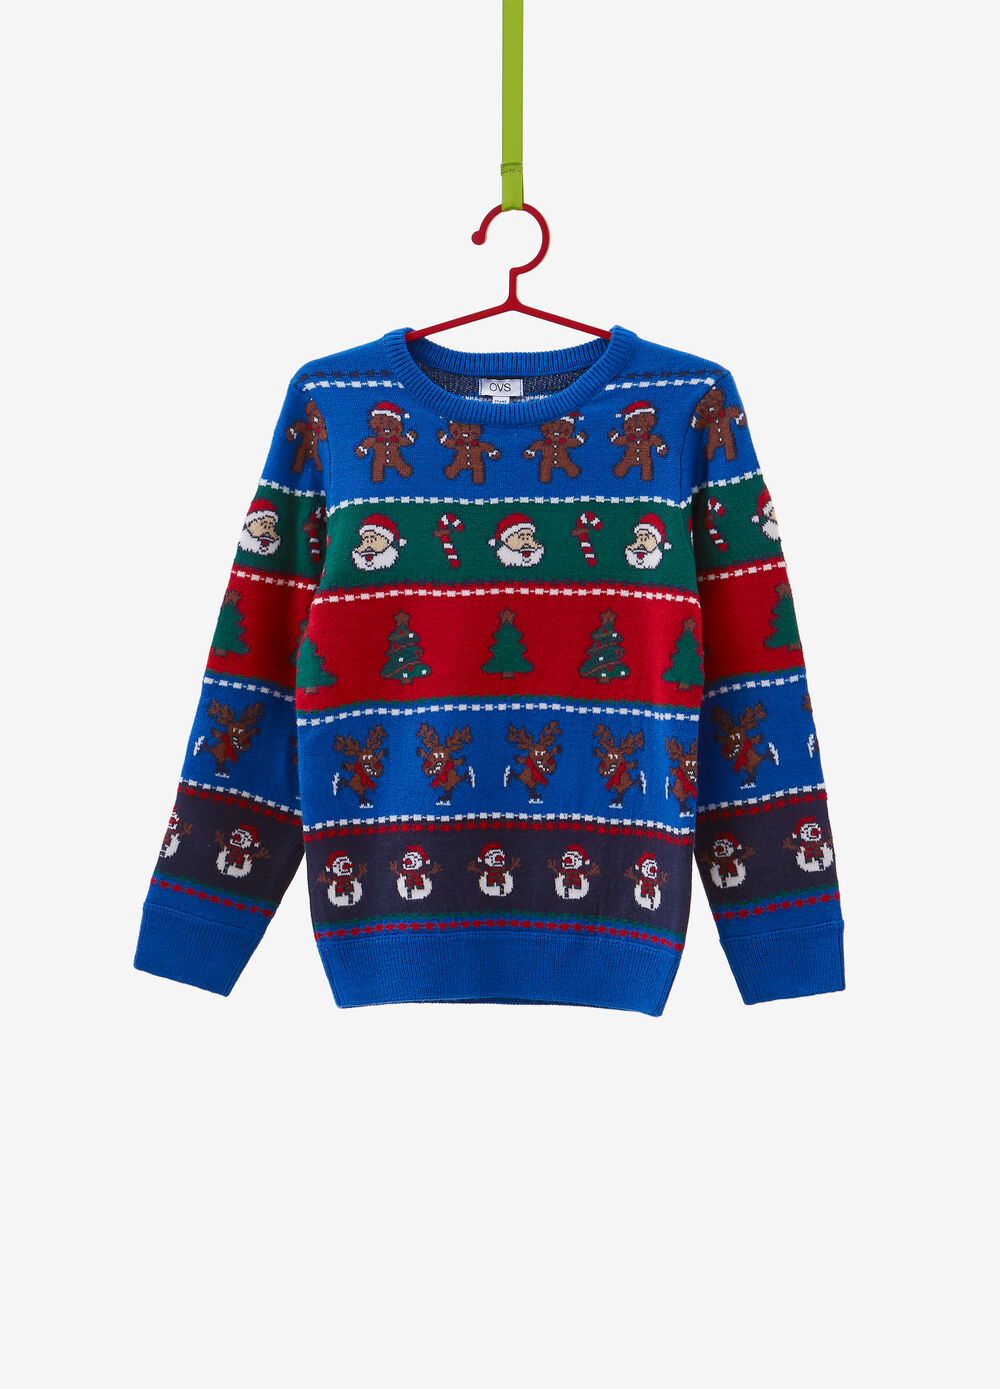 Christmas sweater with Christmas pattern